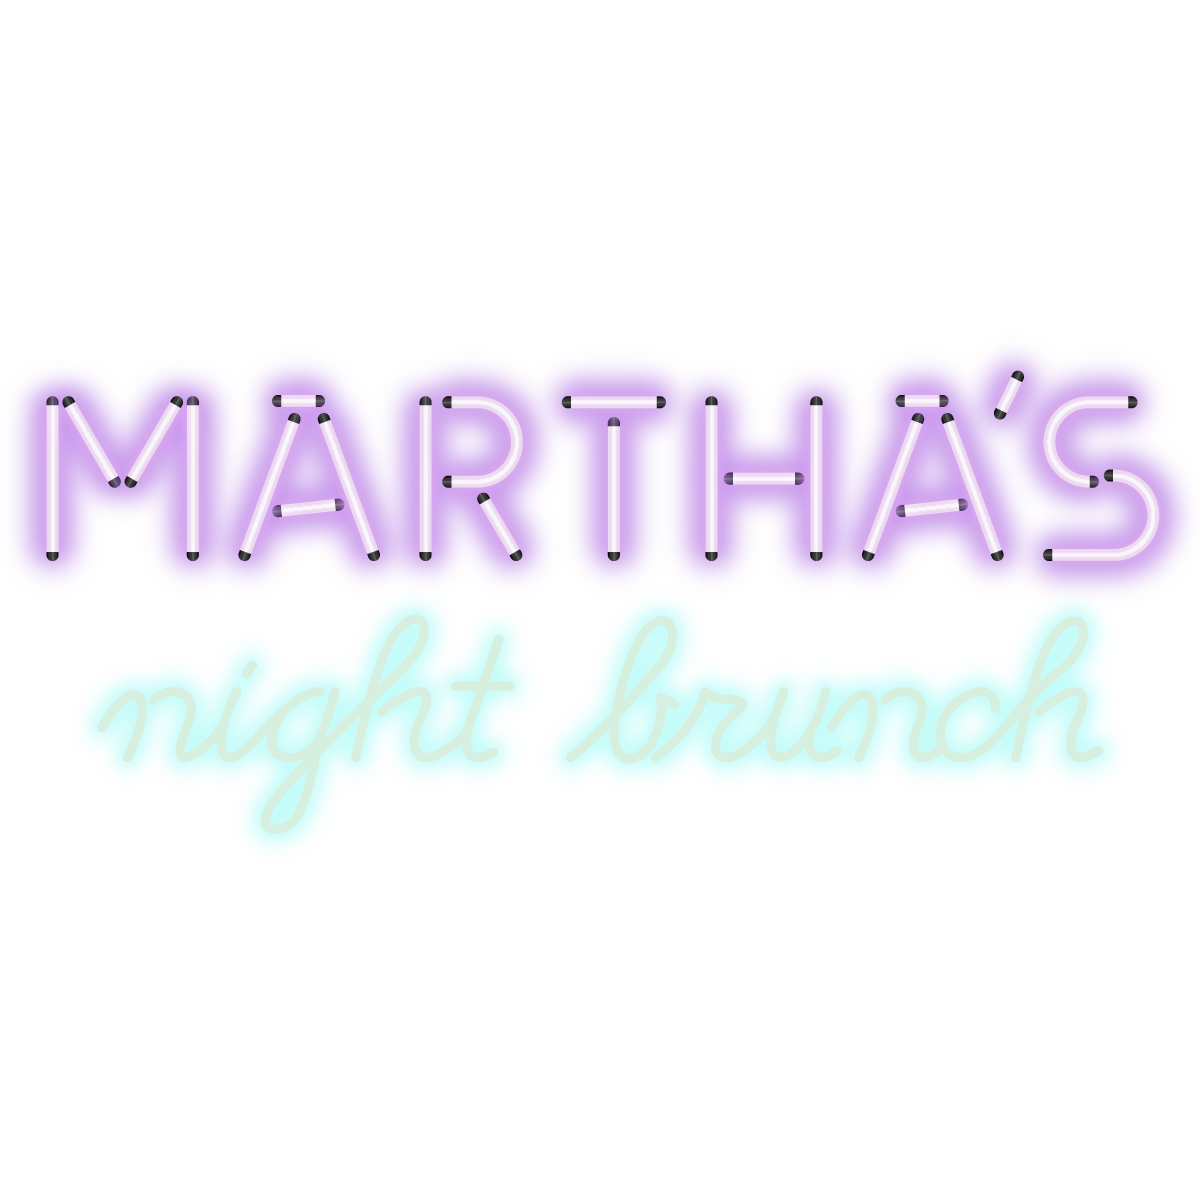 Martha's Night Brunch Bottomless Brunch in London at HUCKSTER Paddington